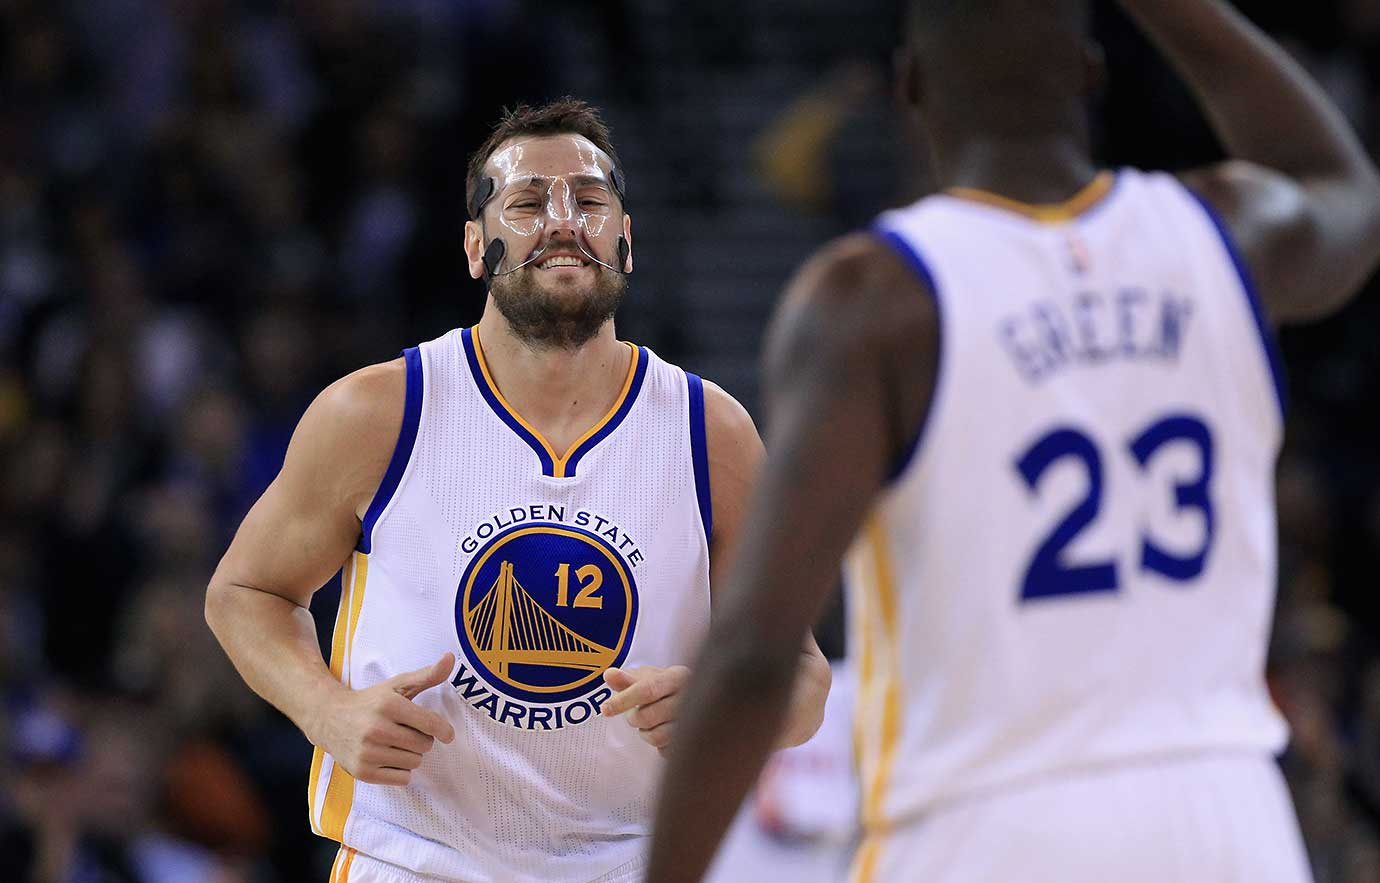 Wearing a protective mask and playing in his first game since suffering a concussion in the season opener, Andrew Bogut put in 20 minutes and had eight points and nine rebounds against Detroit.